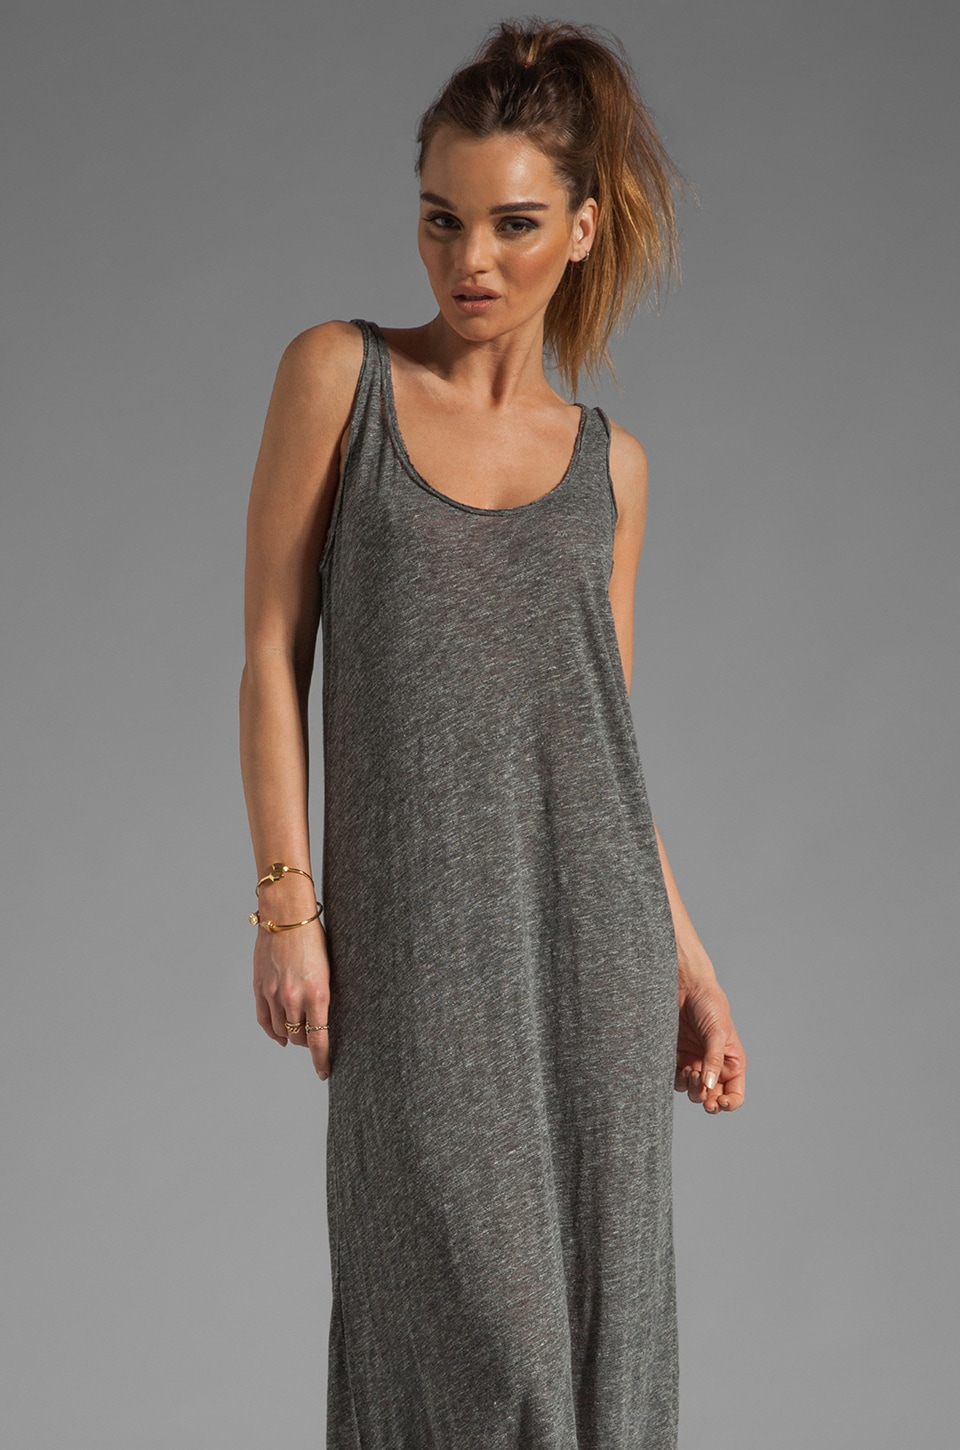 American Vintage Shawano Tank Dress in Charcoal Melange